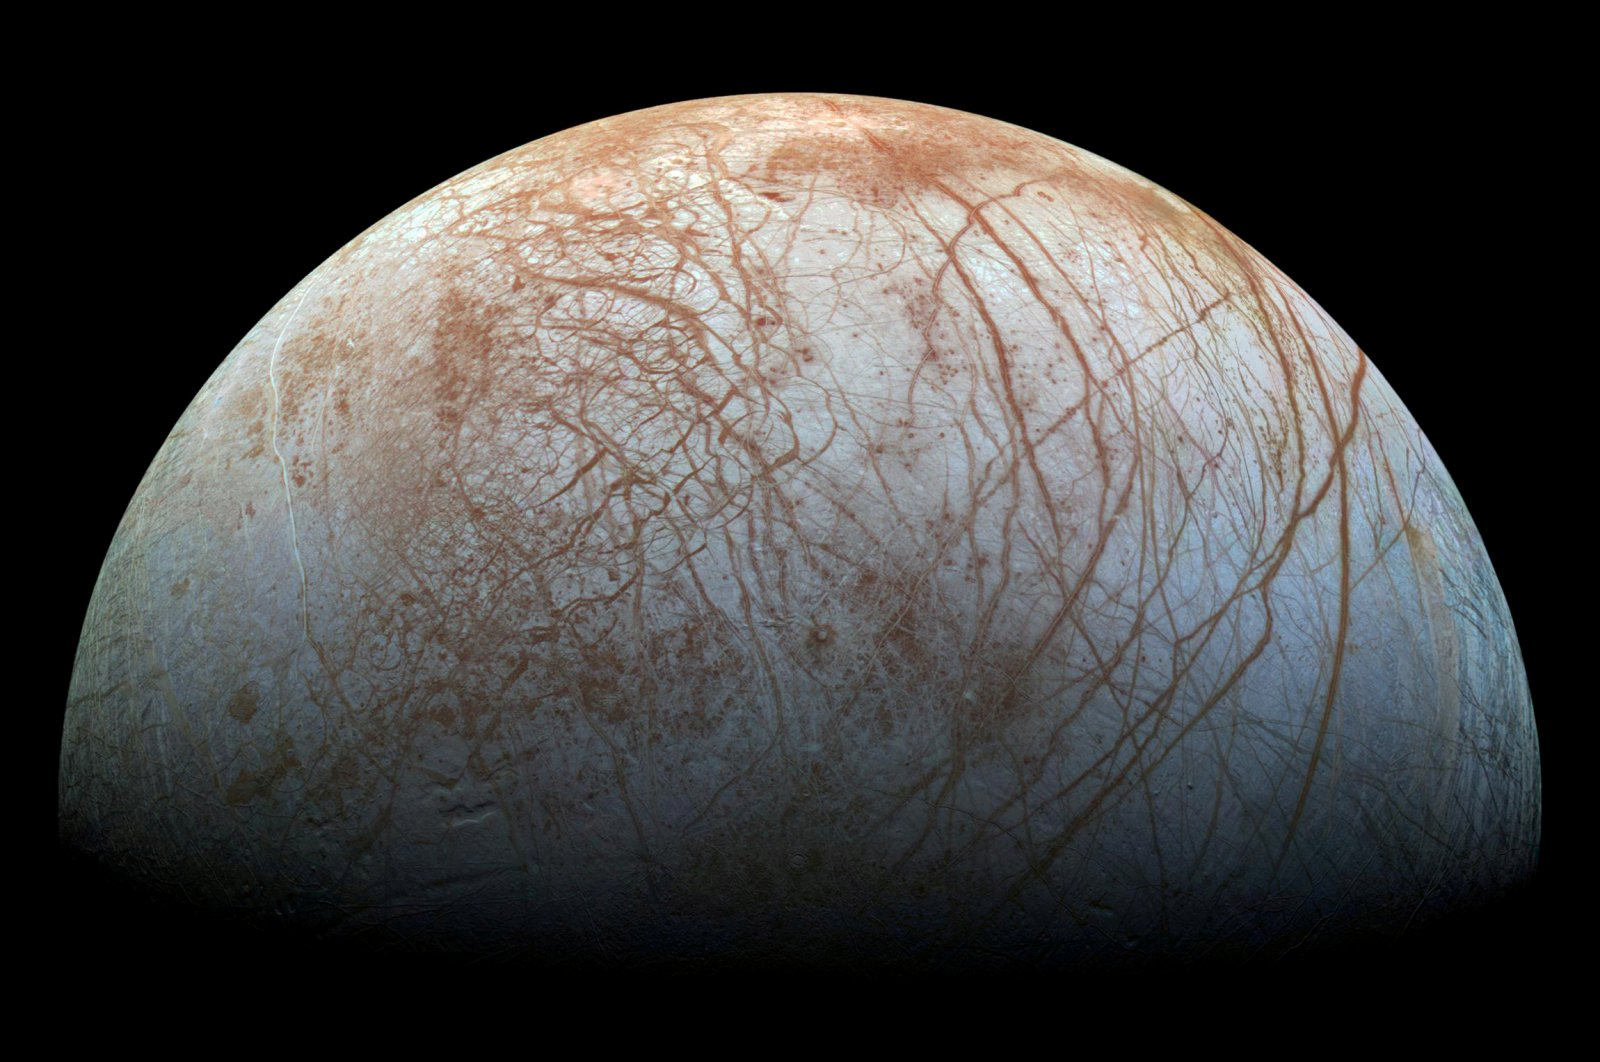 A view of Jupiter's moon Europa created from images taken by NASA's Galileo spacecraft in the late 1990s, obtained by Reuters, May 14, 2018. (NASA / JPL-Caltech / SETI Institute / Handout via Reuters)